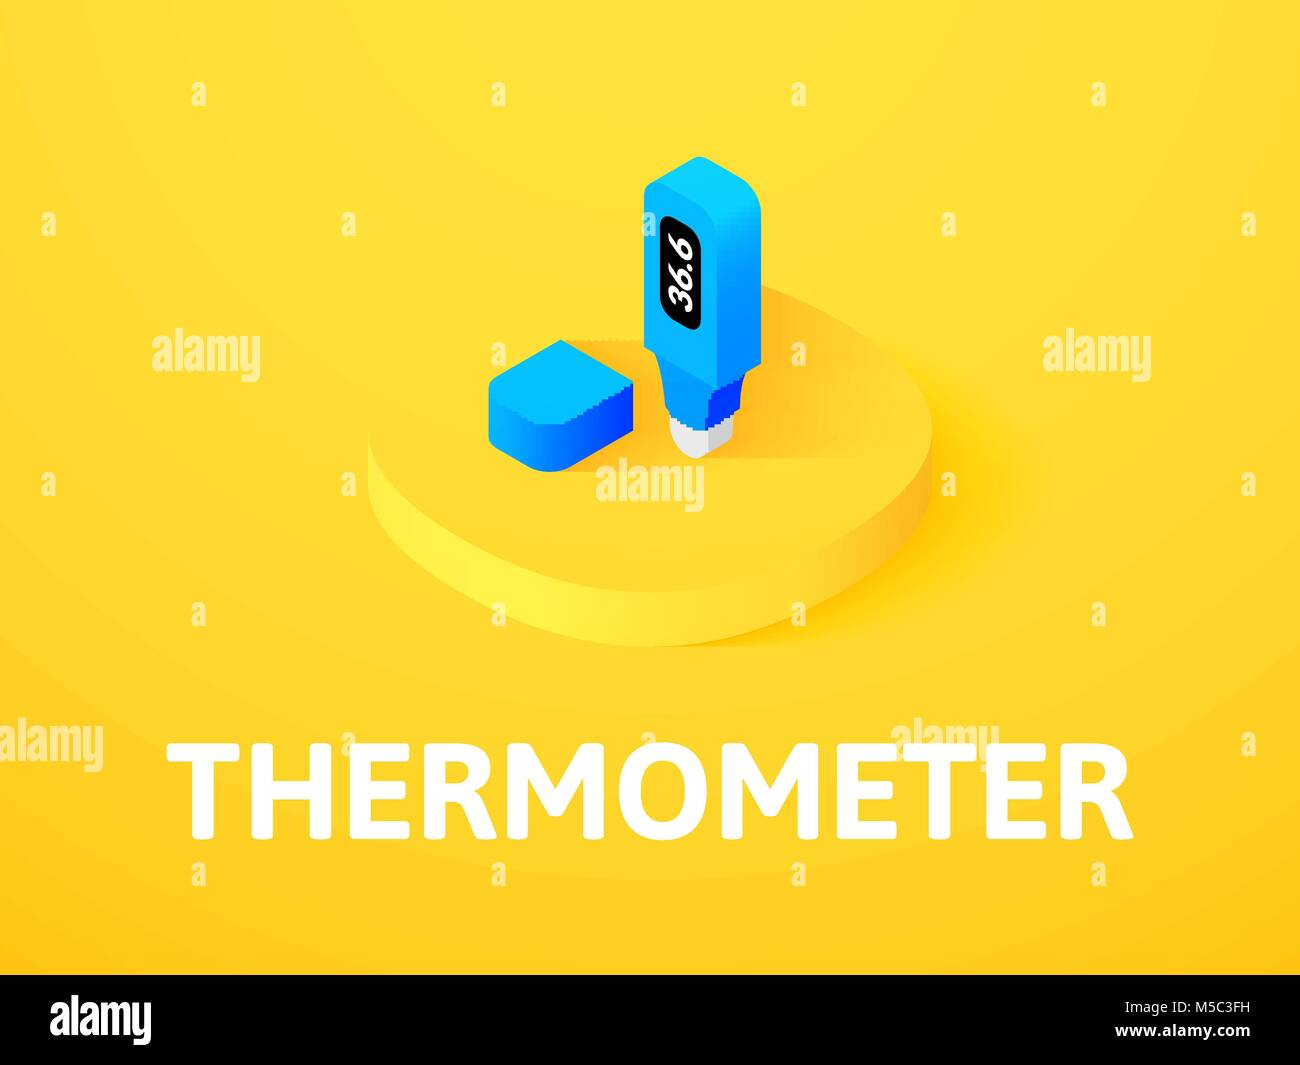 Thermometer isometric icon, isolated on color background - Stock Image